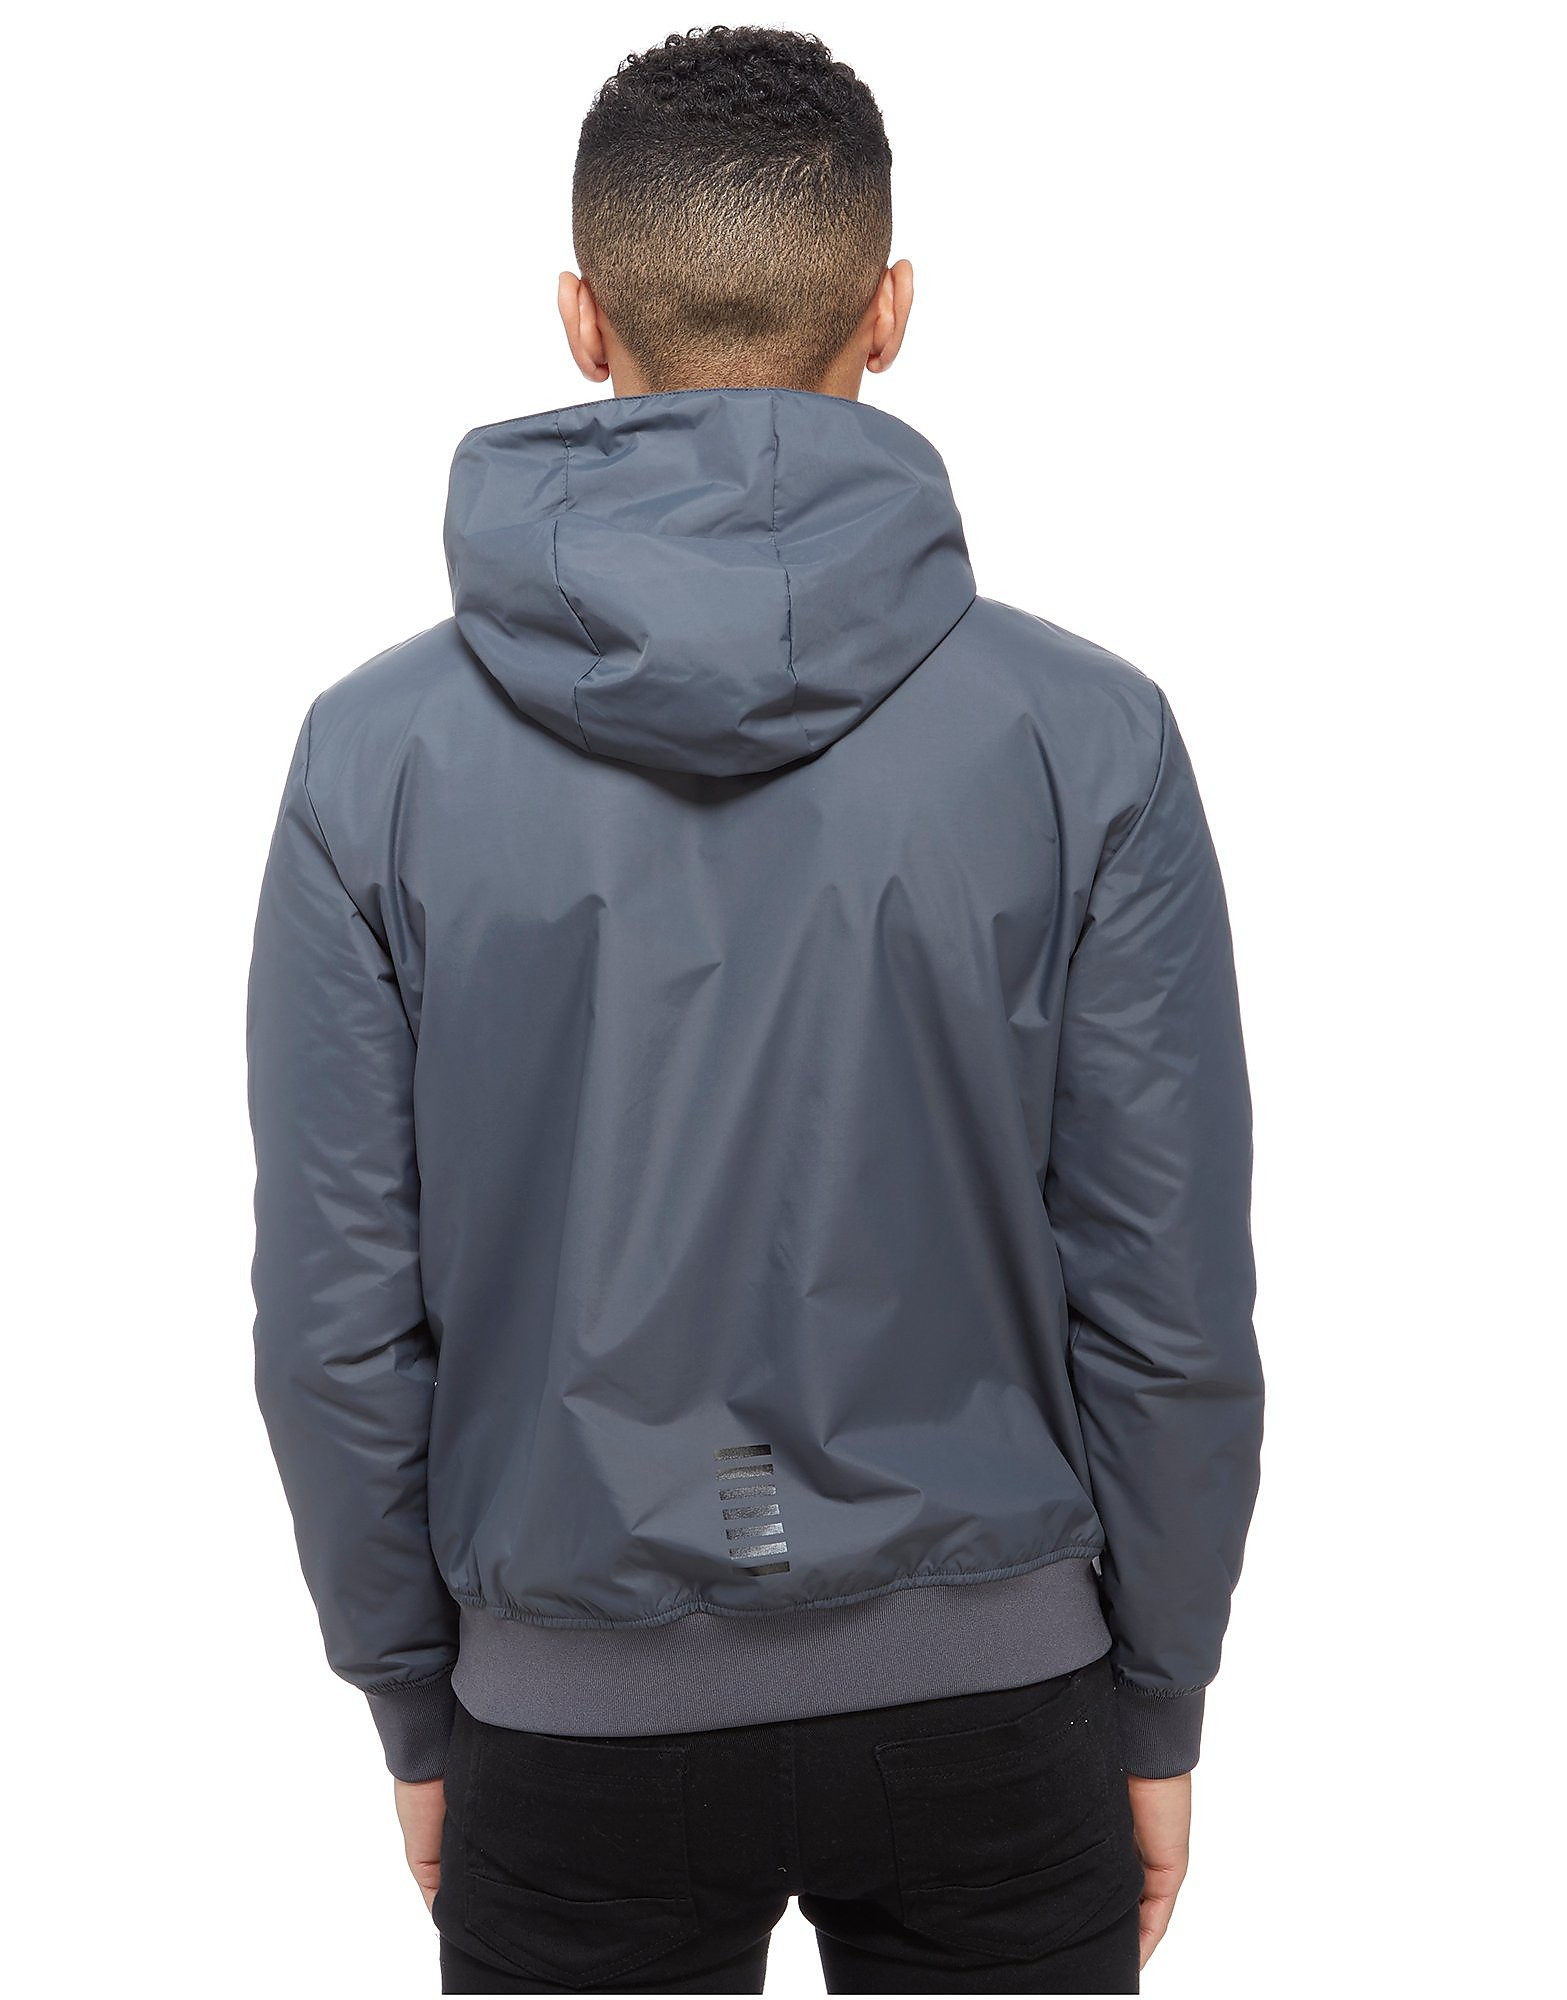 Emporio Armani EA7 Hooded Sailing Jacket